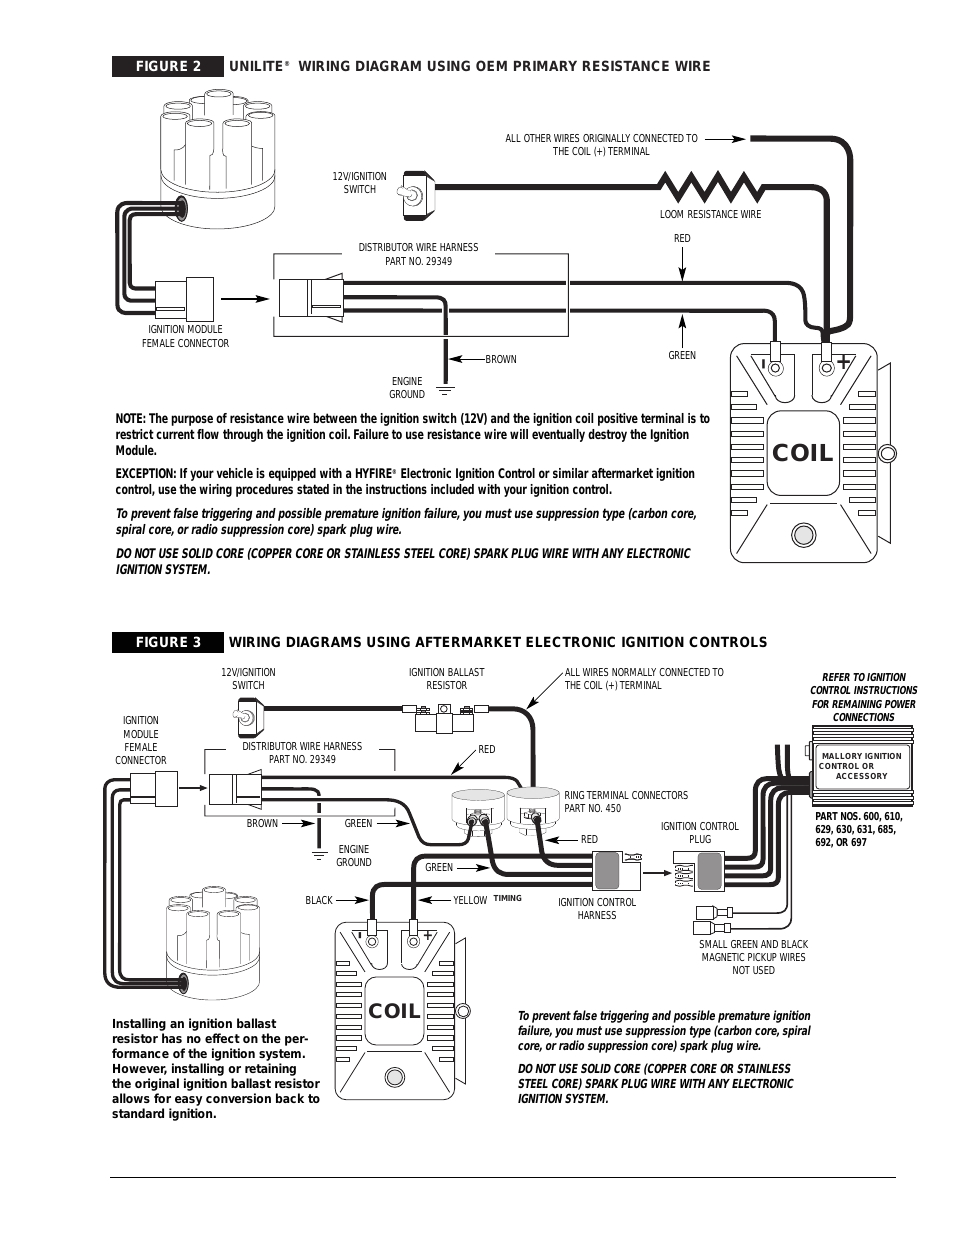 mallory ignition wiring diagram magneto wiring diagrams 24mallory ignition wiring diagram magneto